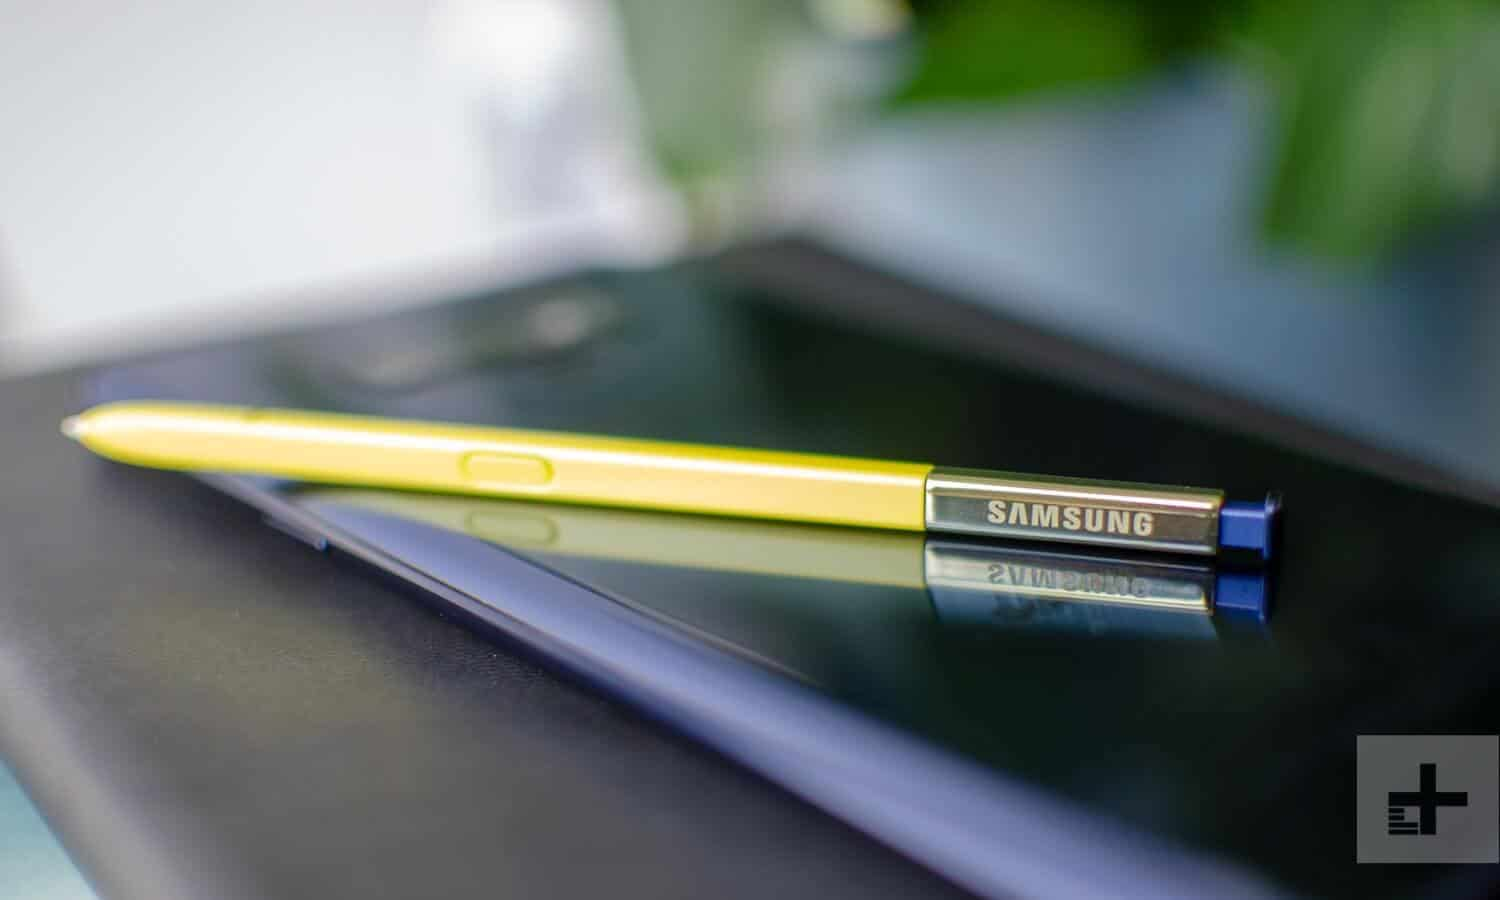 Samsung might bring its S-Pen to the Galaxy S21 series